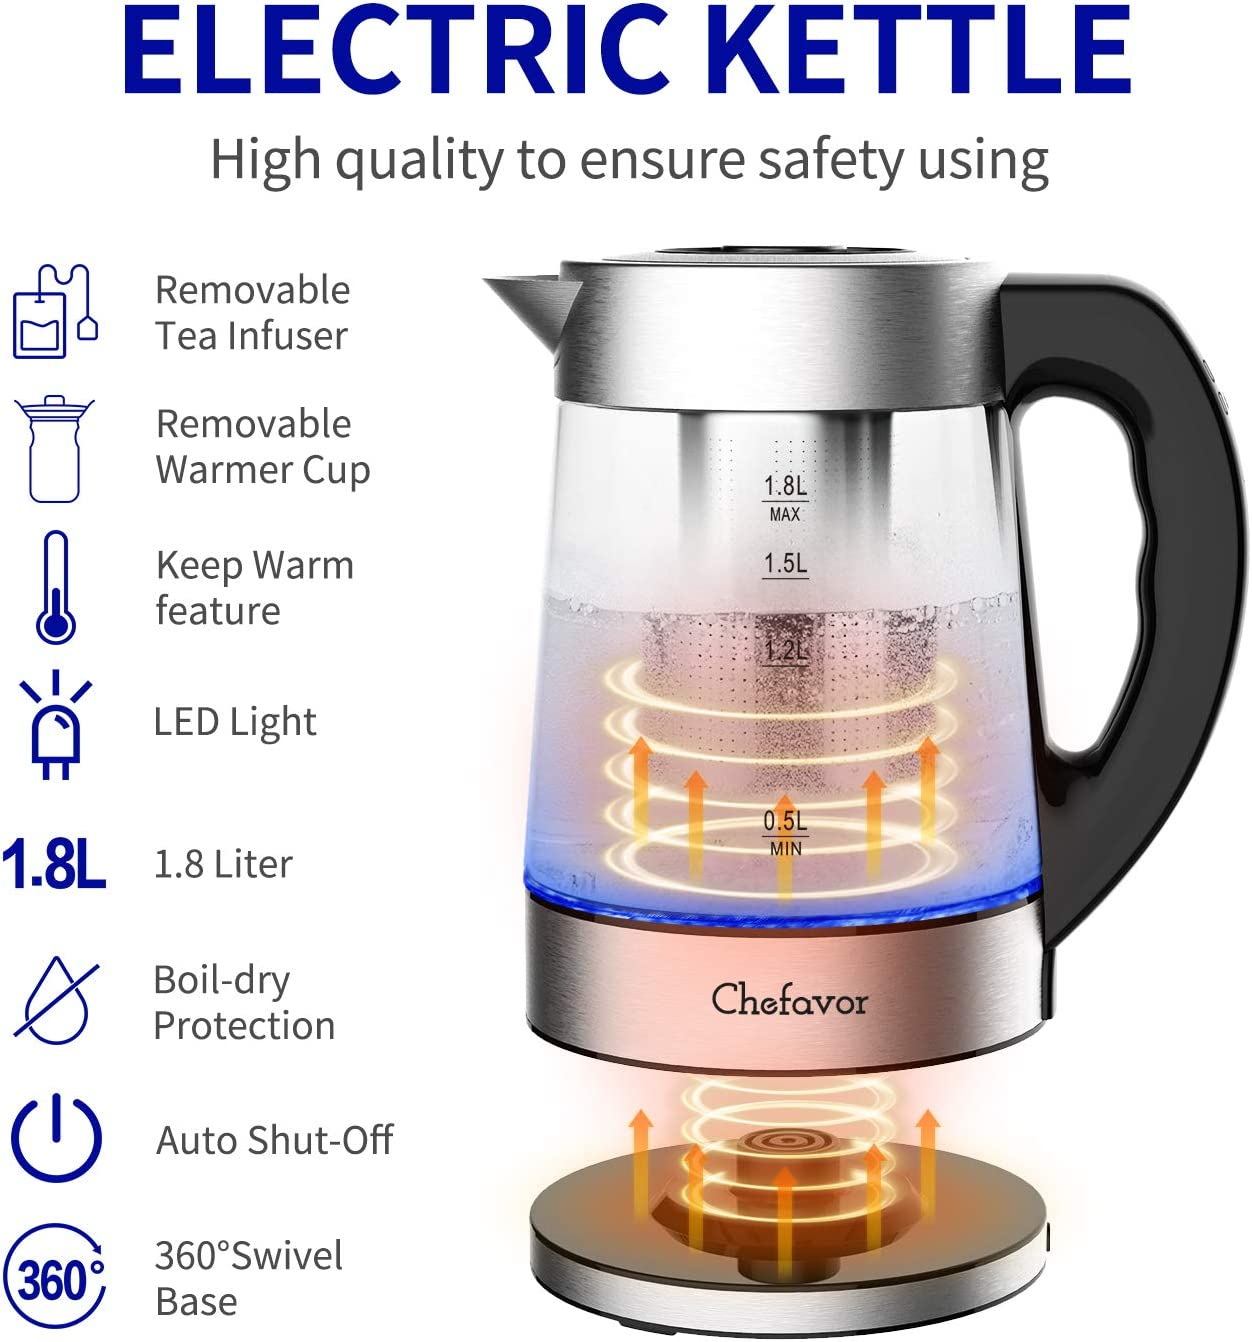 Electric Kettle (BPA Free), Chefavor 1.8 L 2200W, Smart Temperature Controllable with LCD Display, Removable Tea Infuser & Warmer Cup Glass, Boil Dry